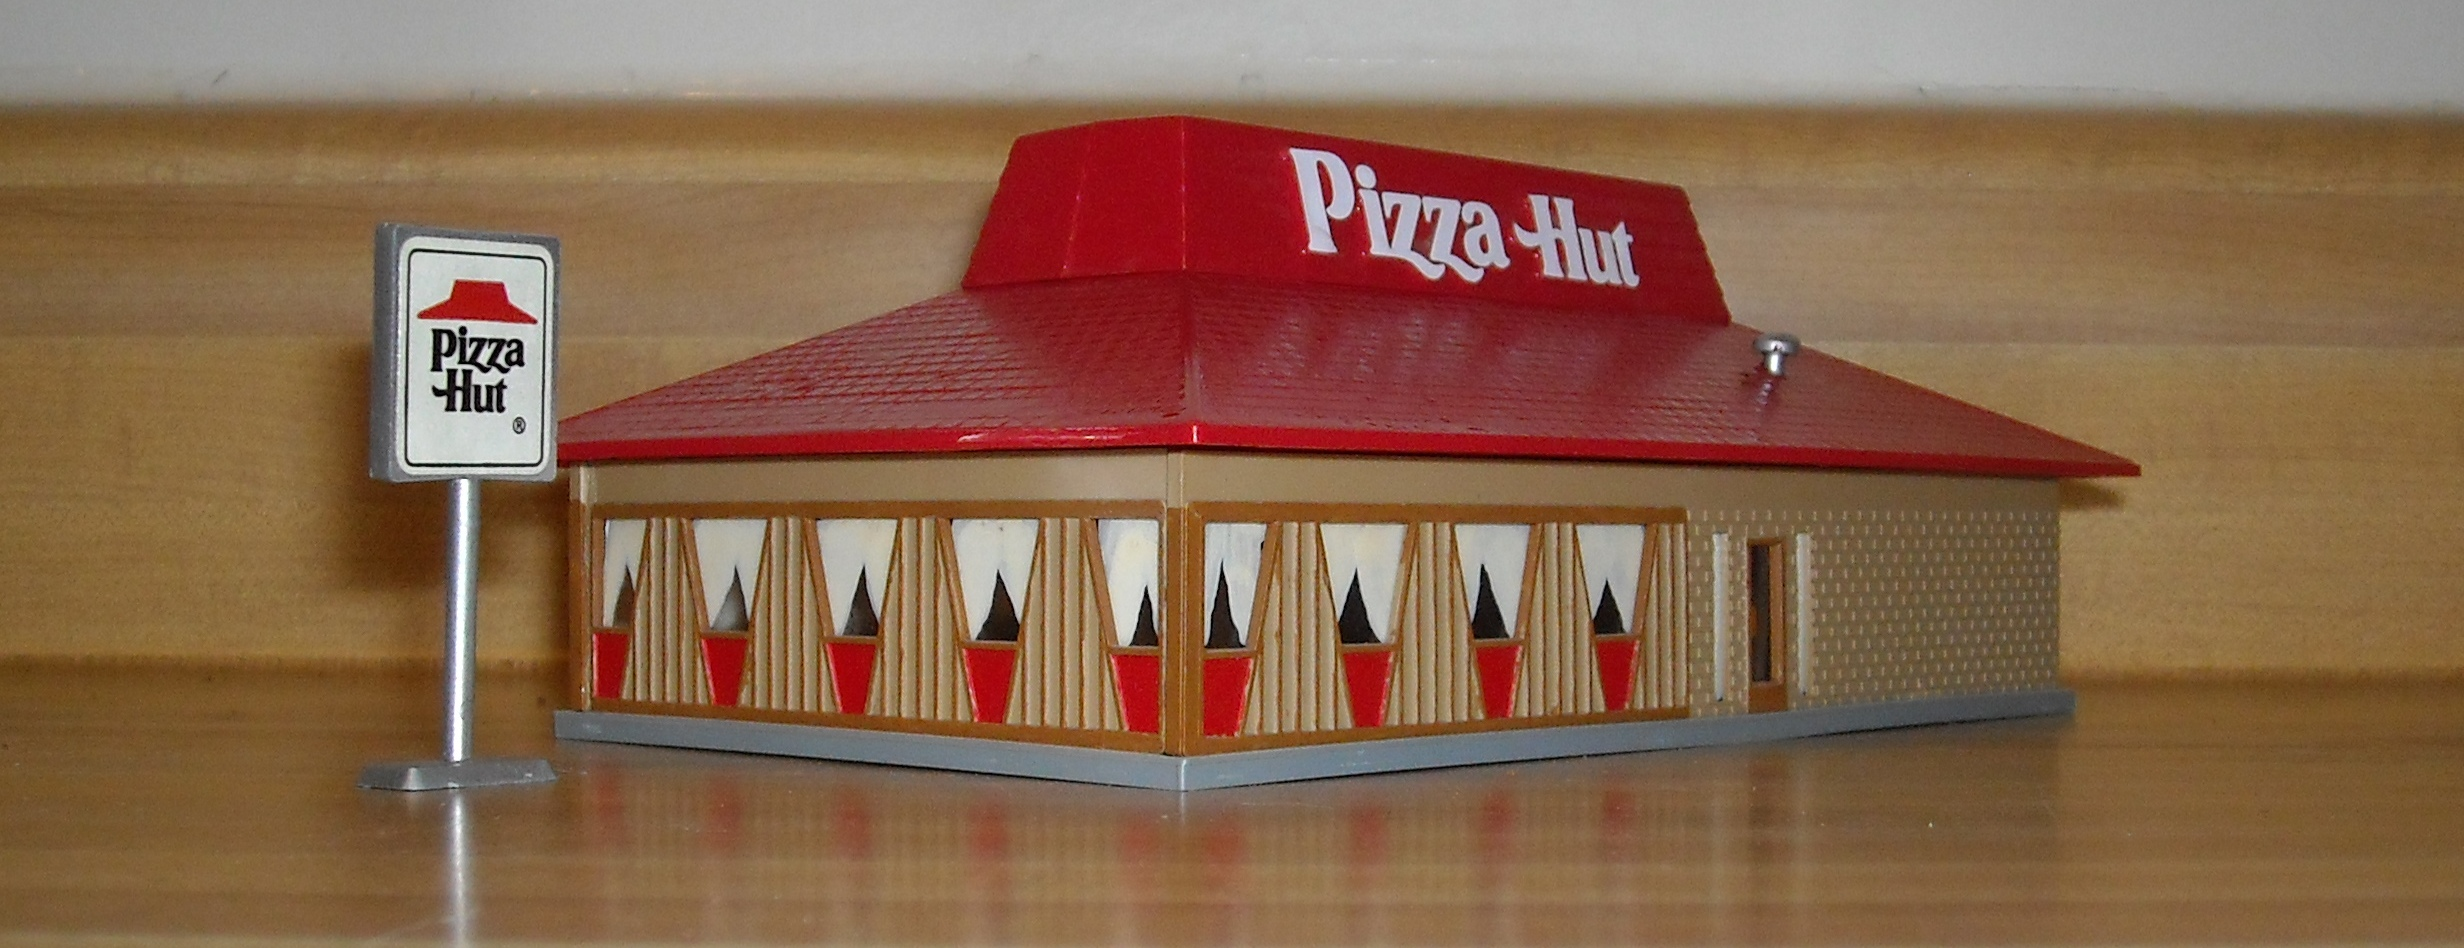 pizza hut layout